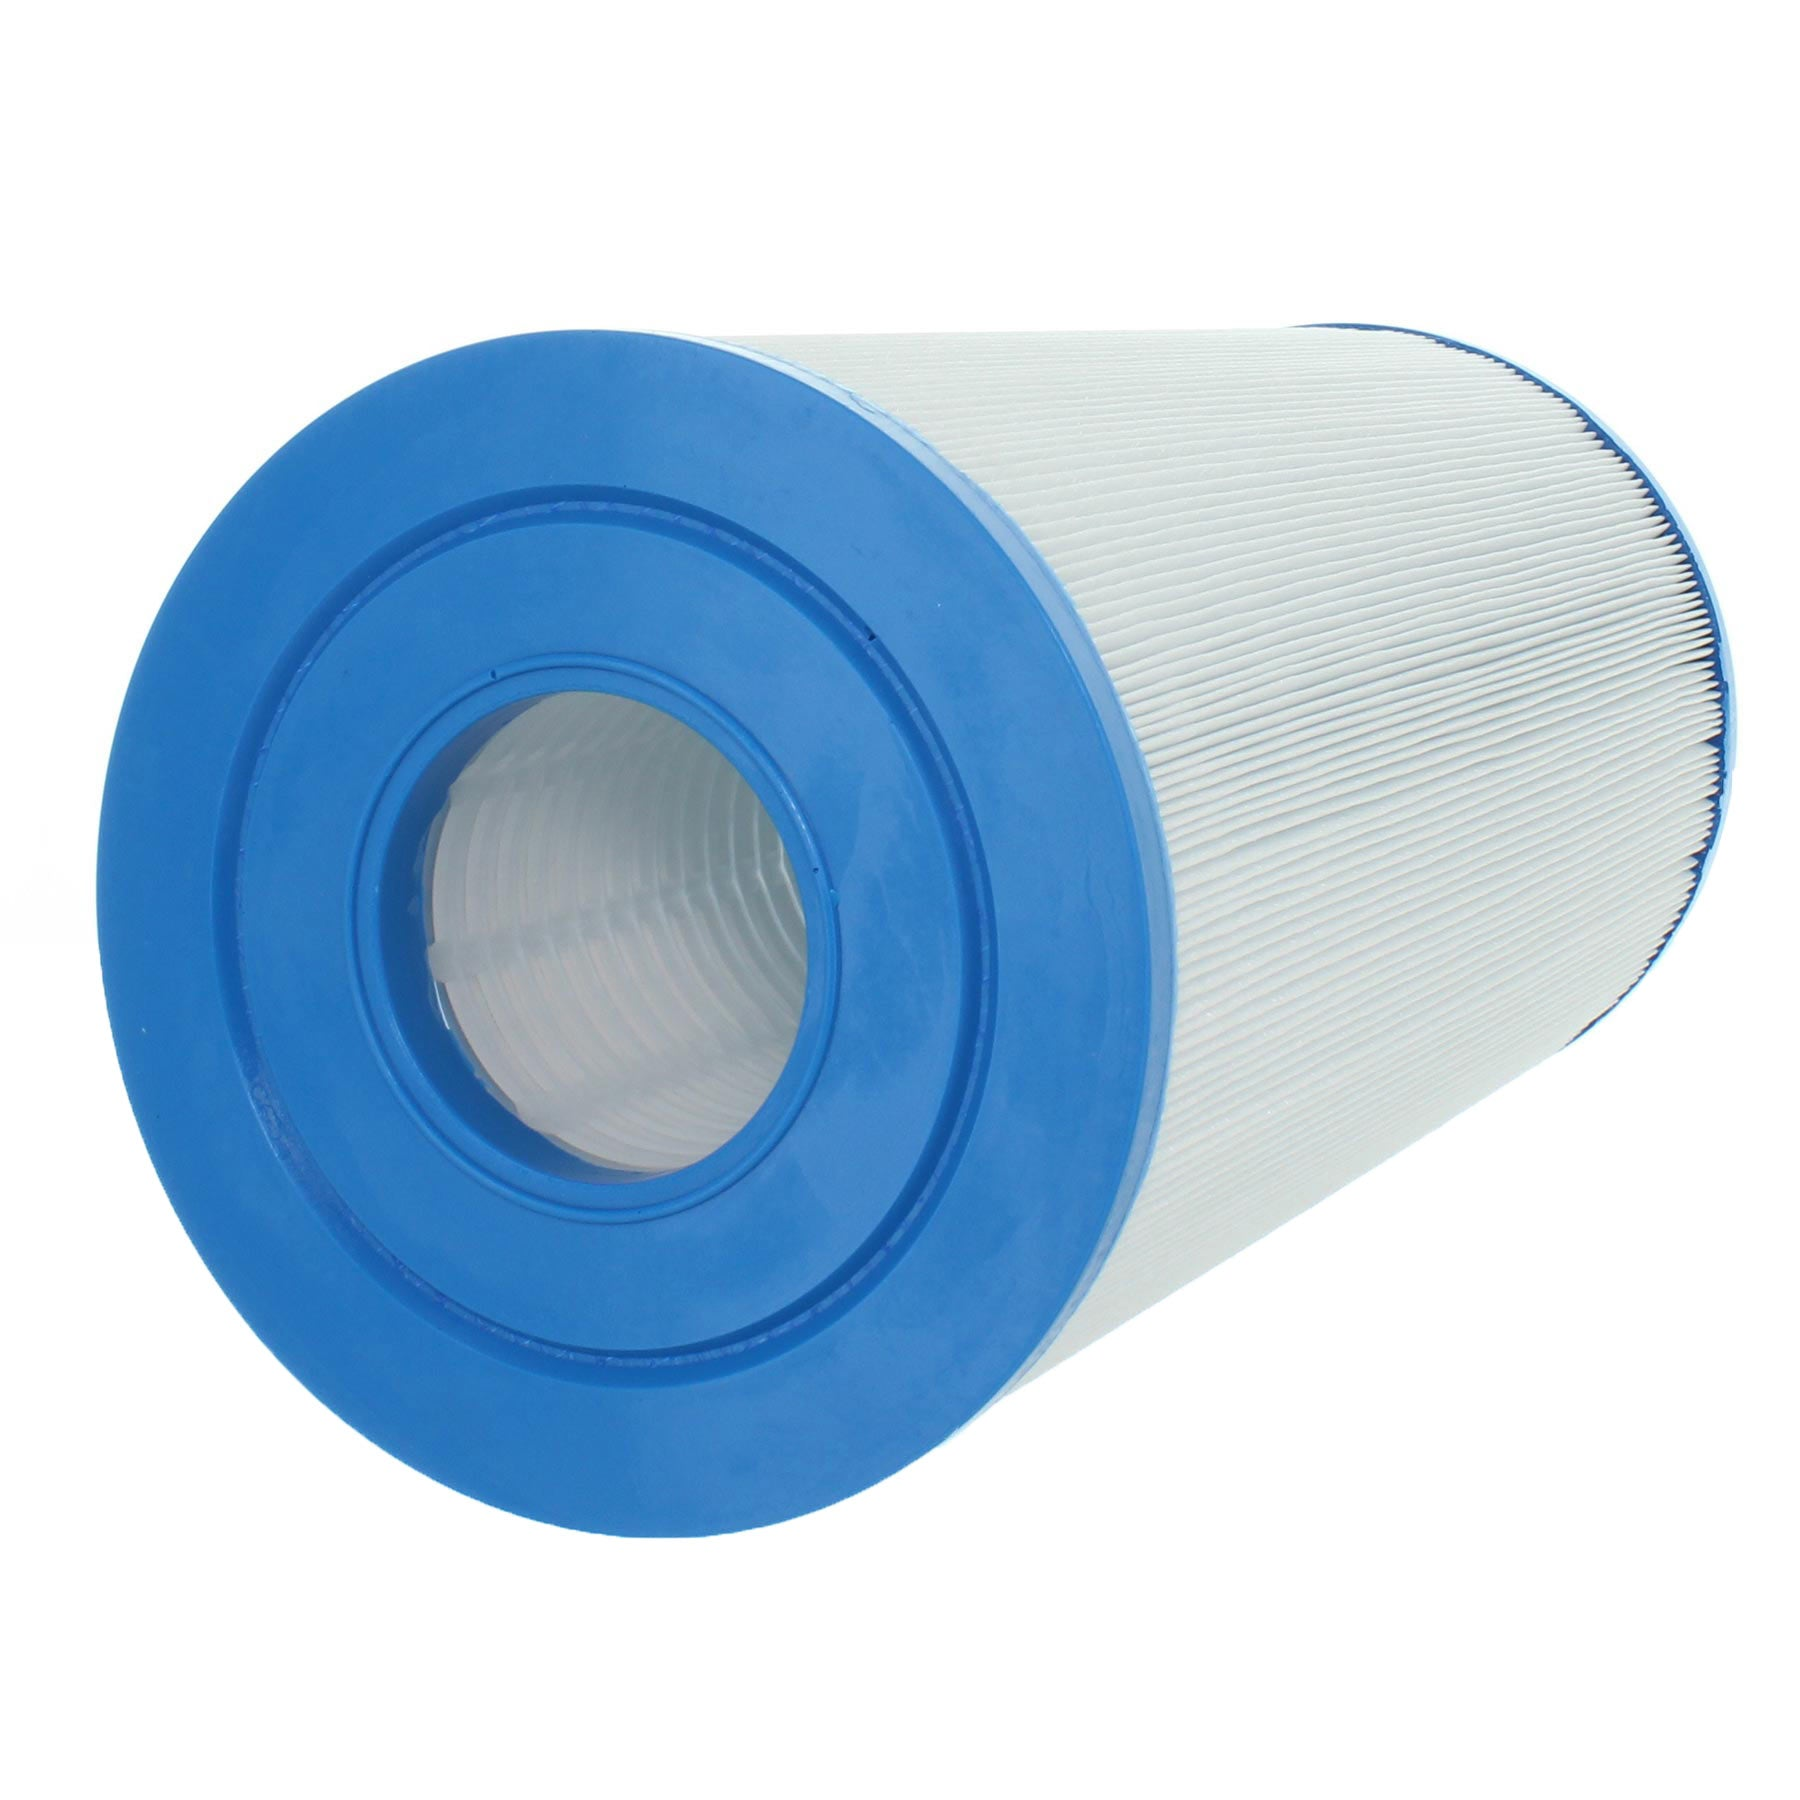 Replaces Unicel C-5345, Pleatco PLBS50 - Pool, Hot Tub & Spa Cartridge-Filter Cartridge-FilterDeal.com